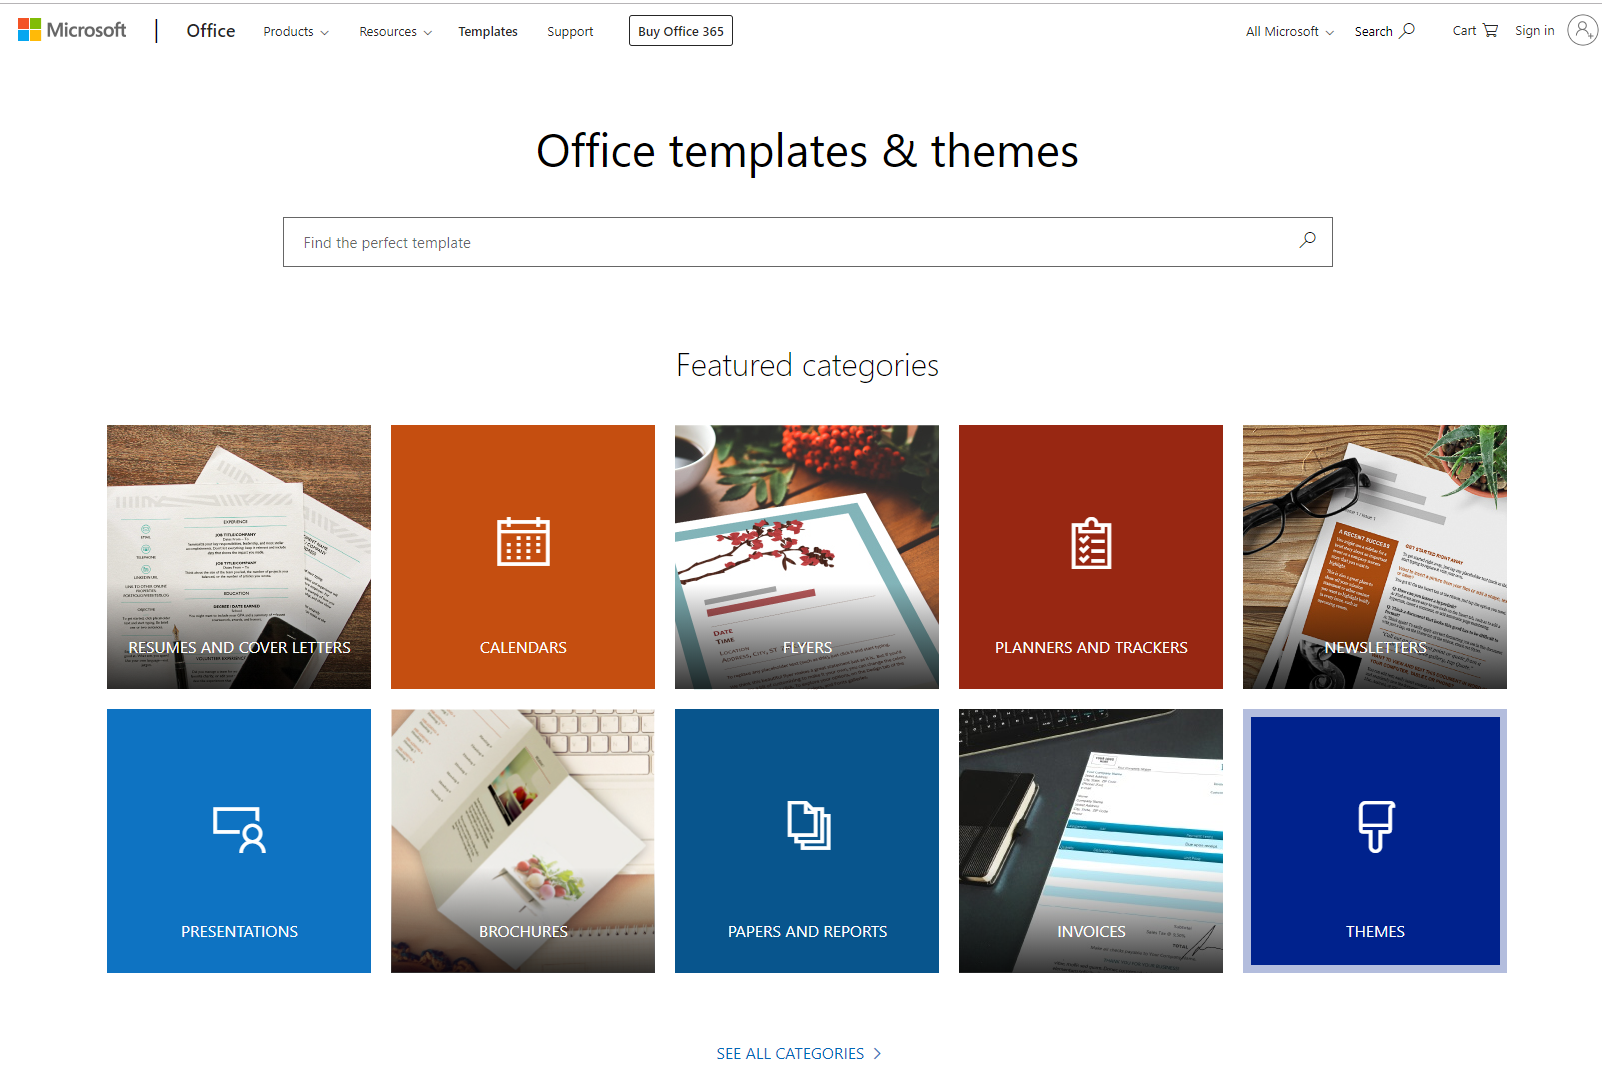 templates.office.com best free PDF templates